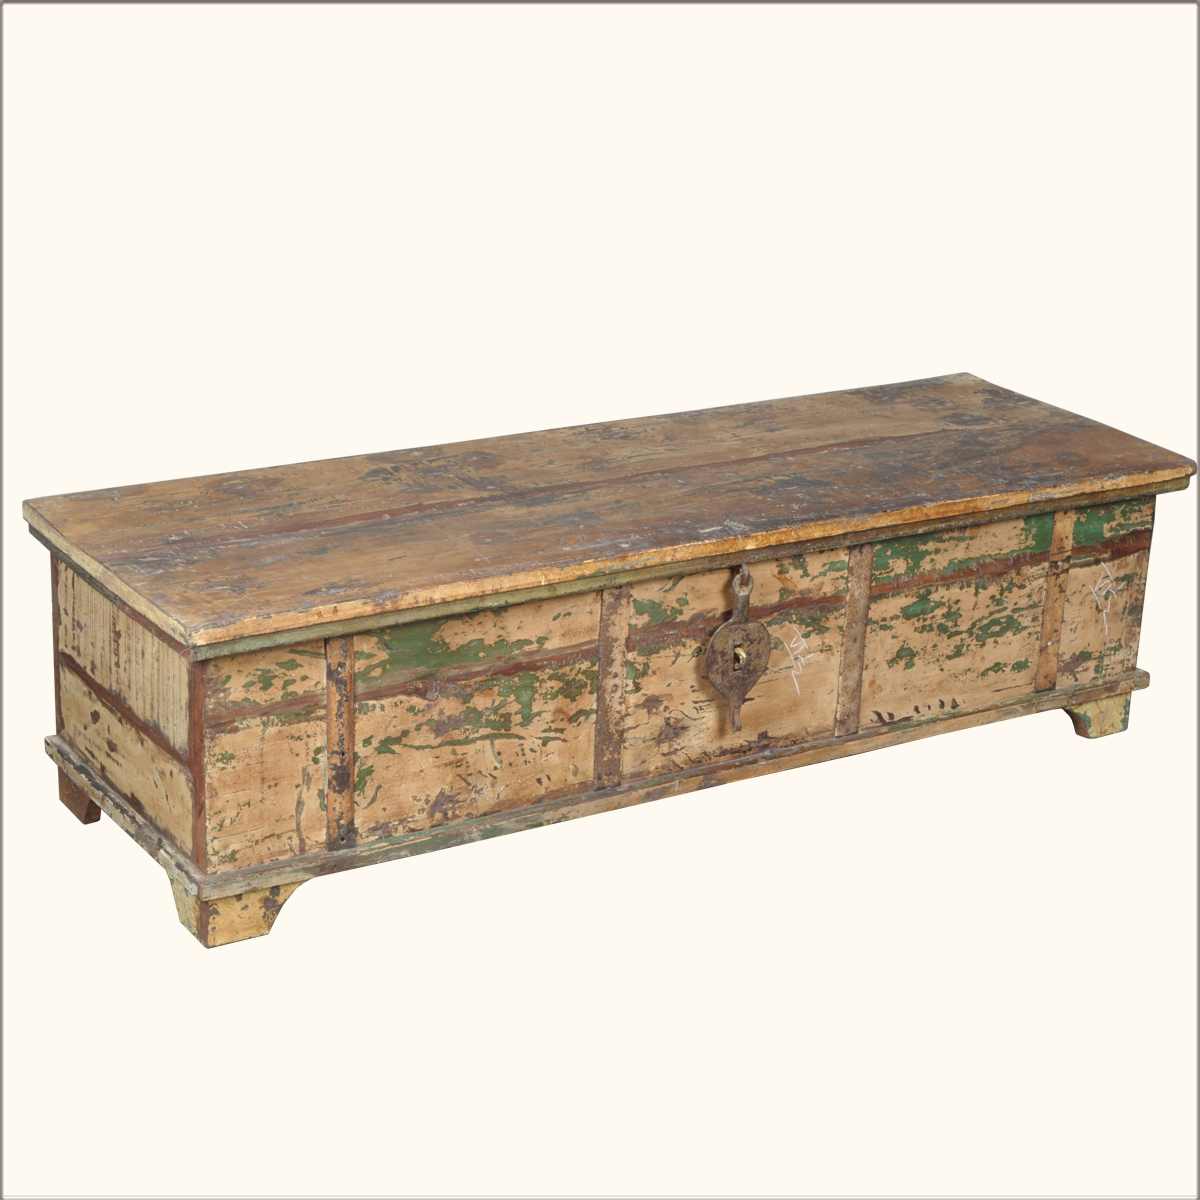 Distressed Old Wood Coffee Table Chest Trunk Storage Box EBay